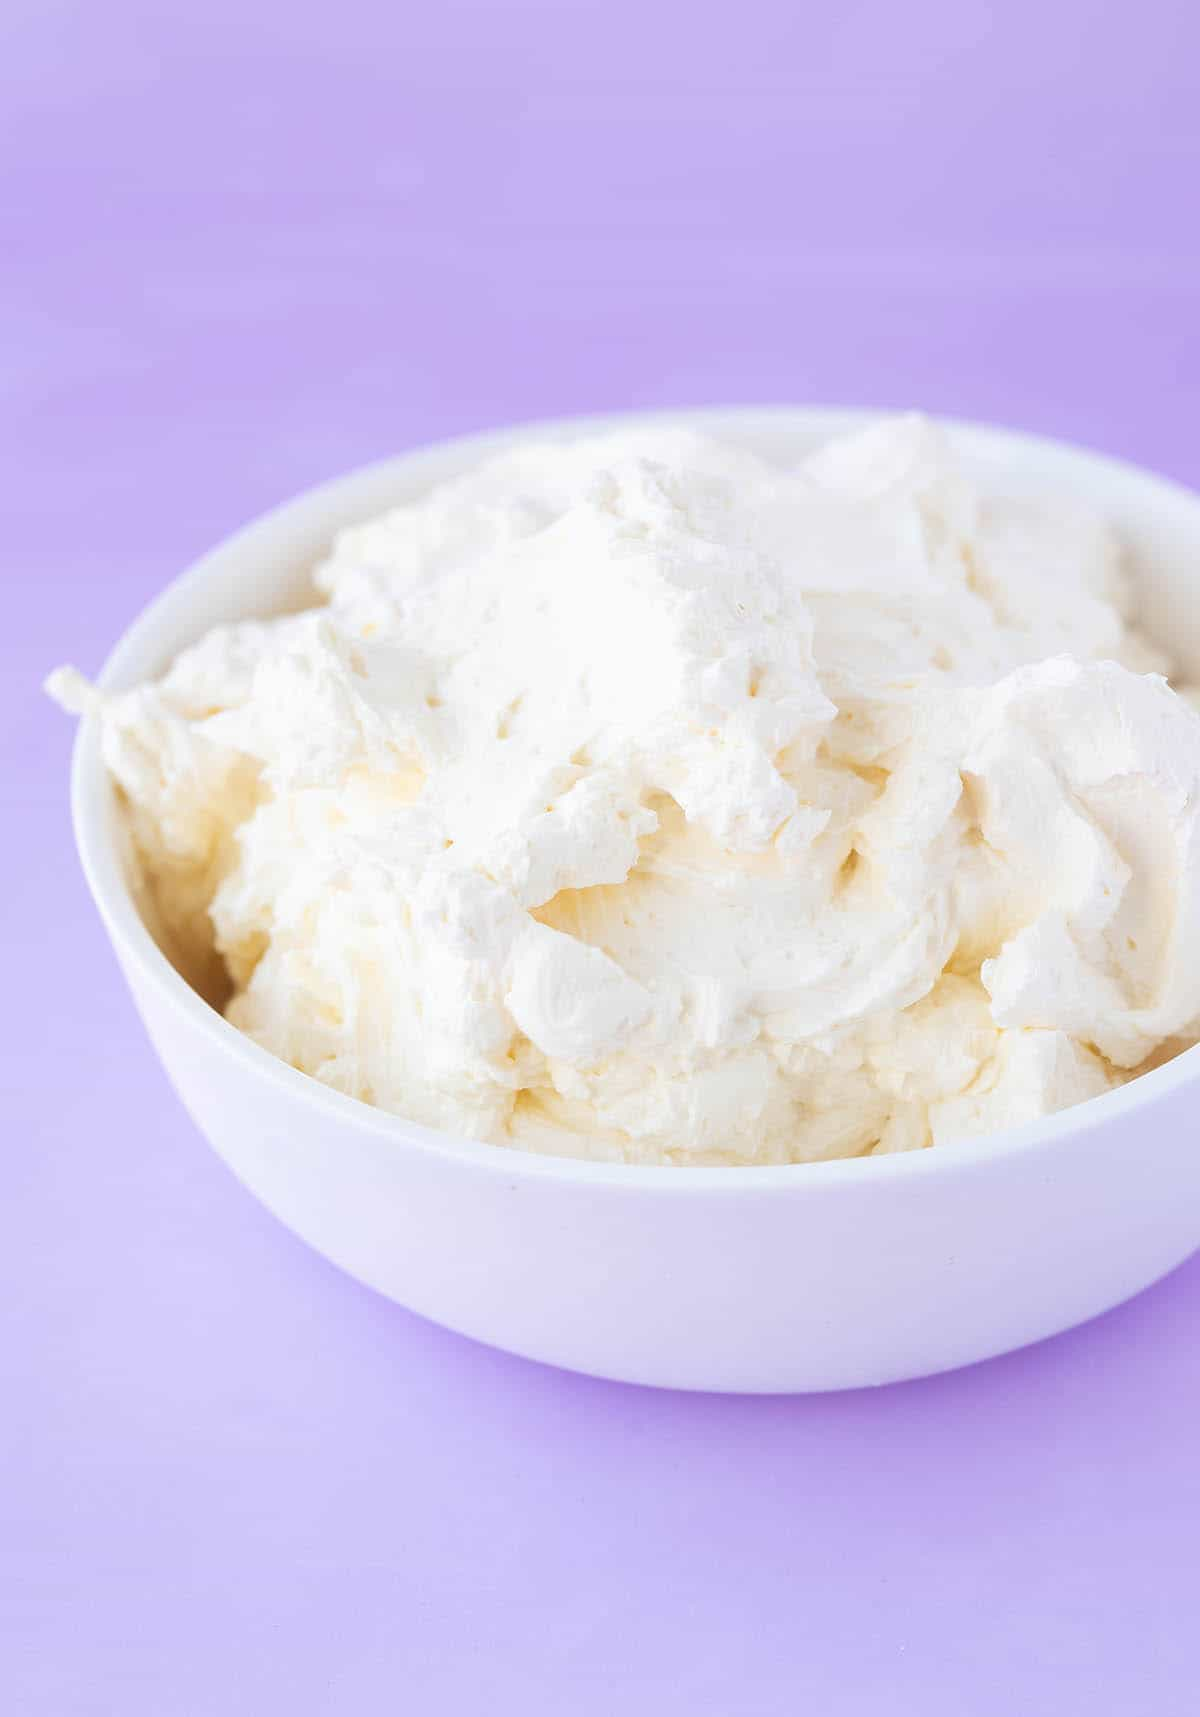 A white bowl filled with creamy Swiss Meringue Buttercream.